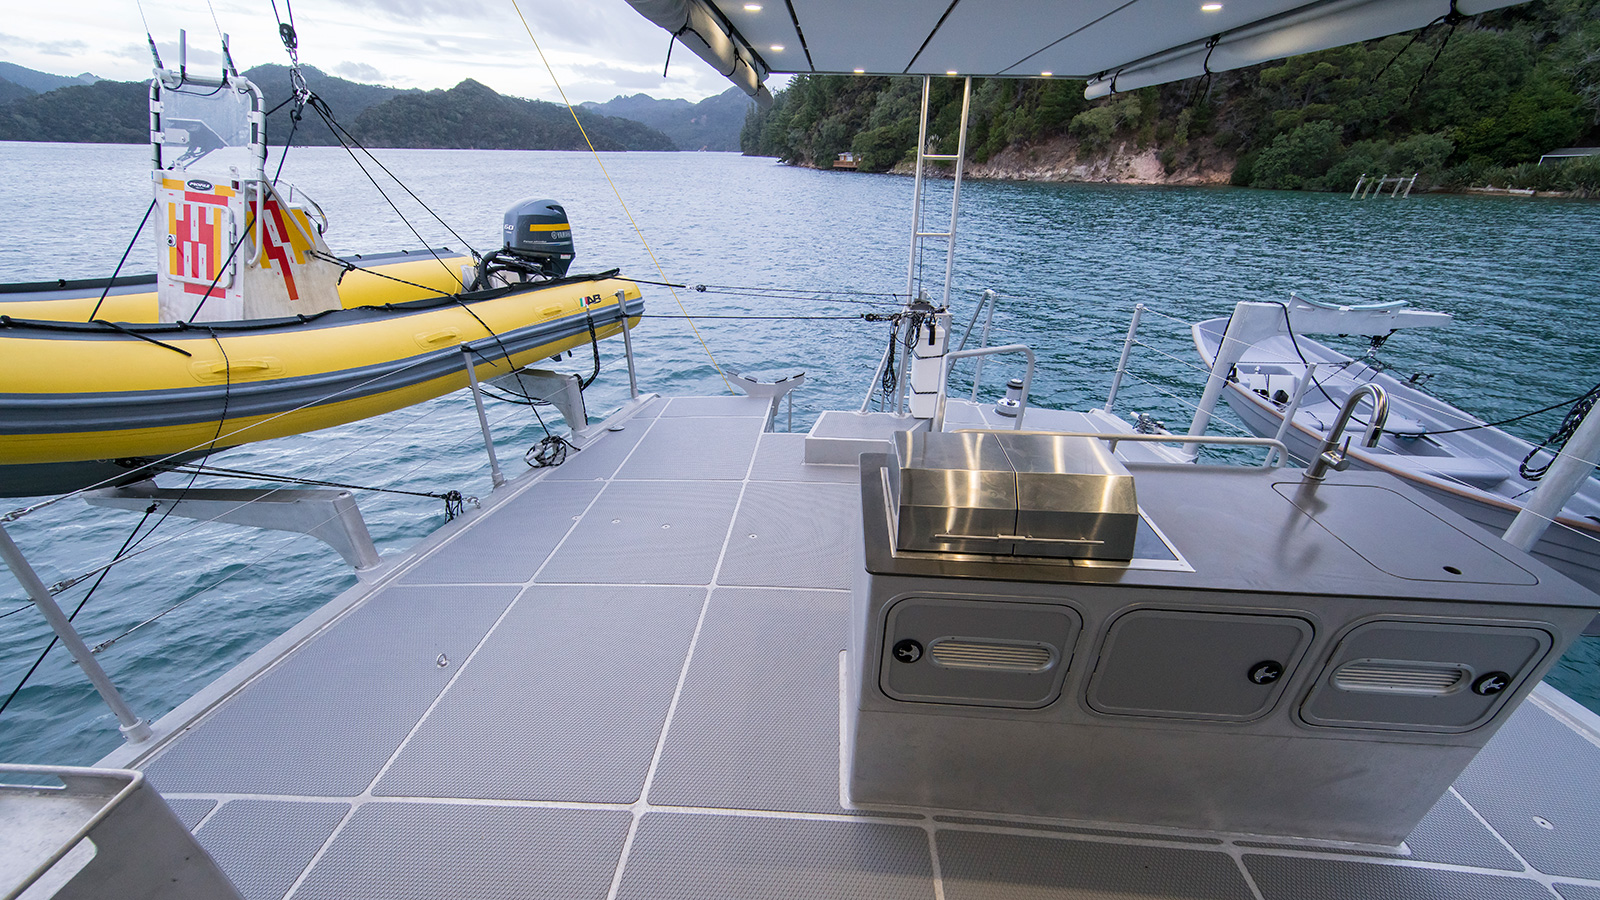 the-aft-deck-of-the-fpb-78-explorer-yacht-cochise-credit-steve-dashew